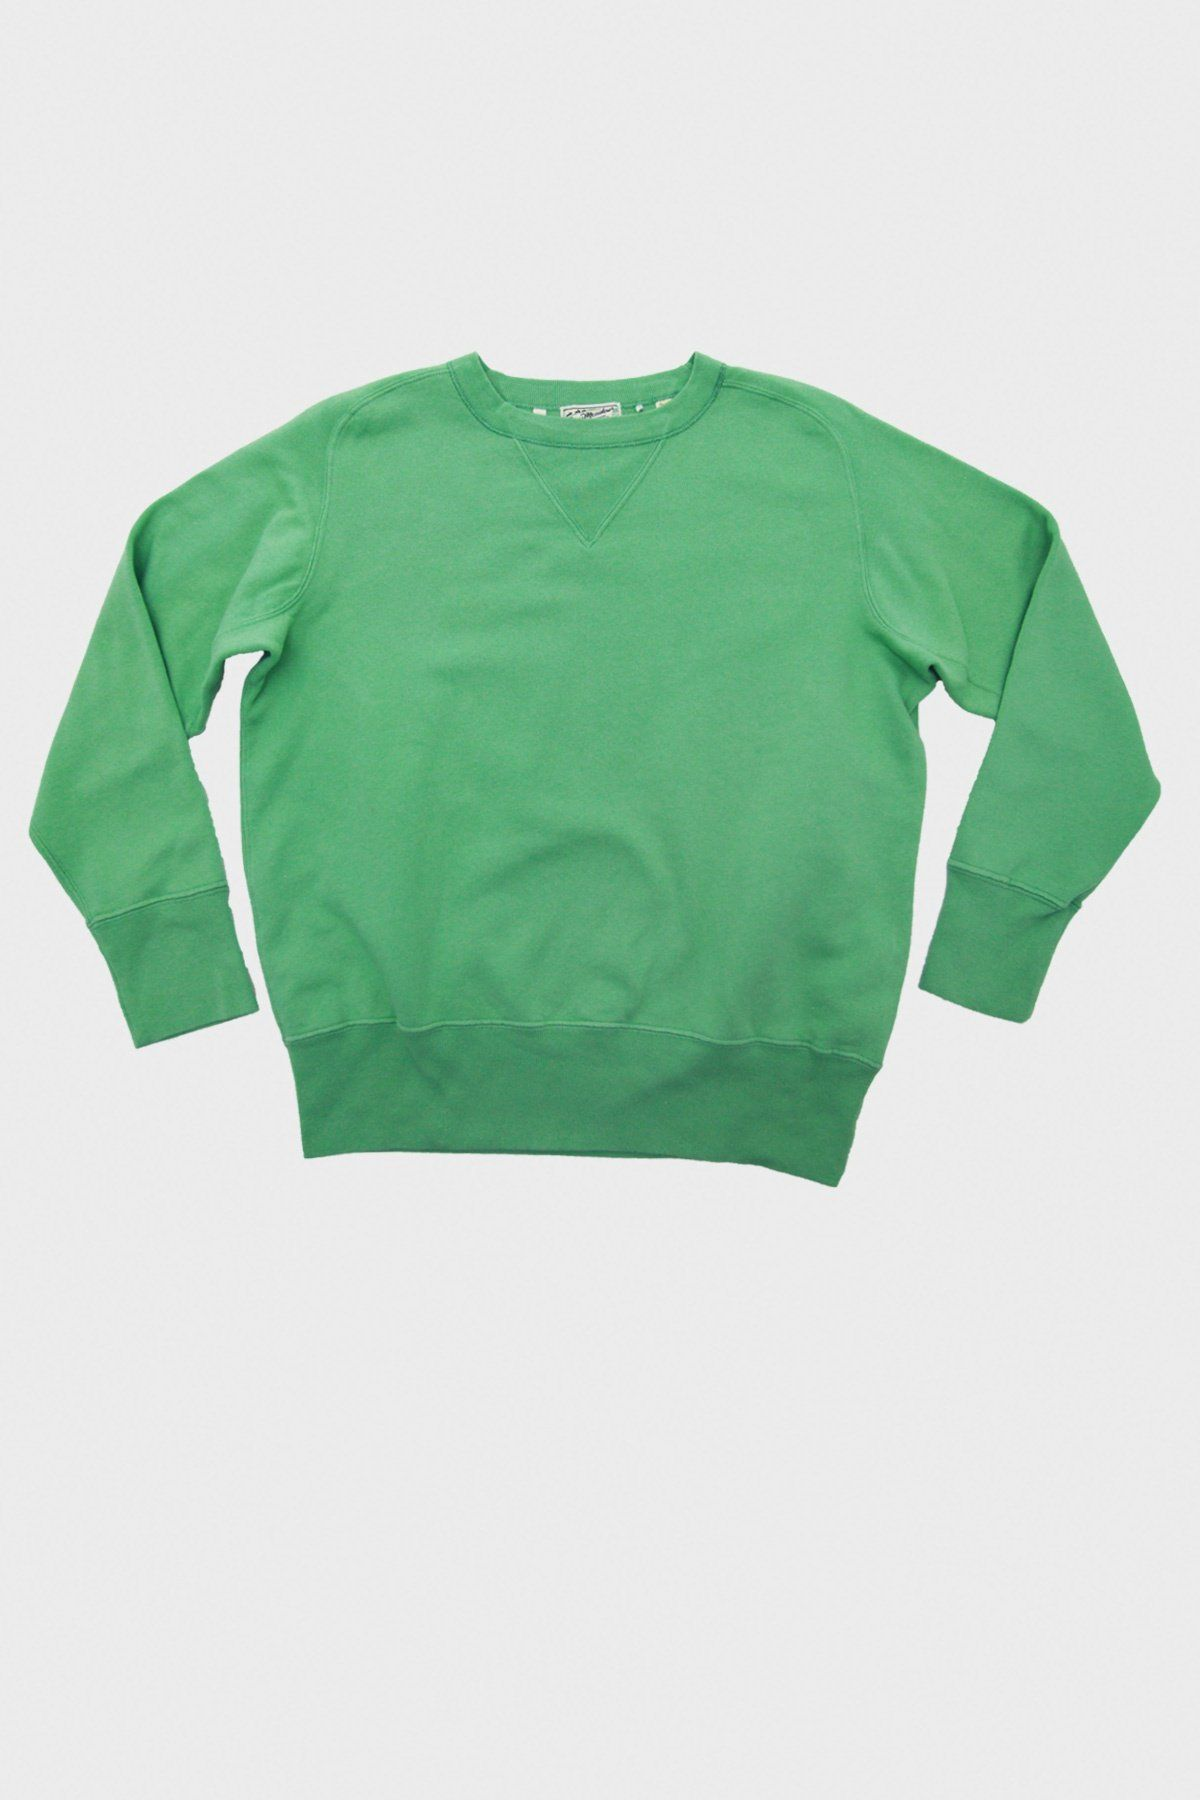 8df3d342 Bay Meadows Sweatshirt - Mint Green | Levi's Vintage Clothing | Bay ...